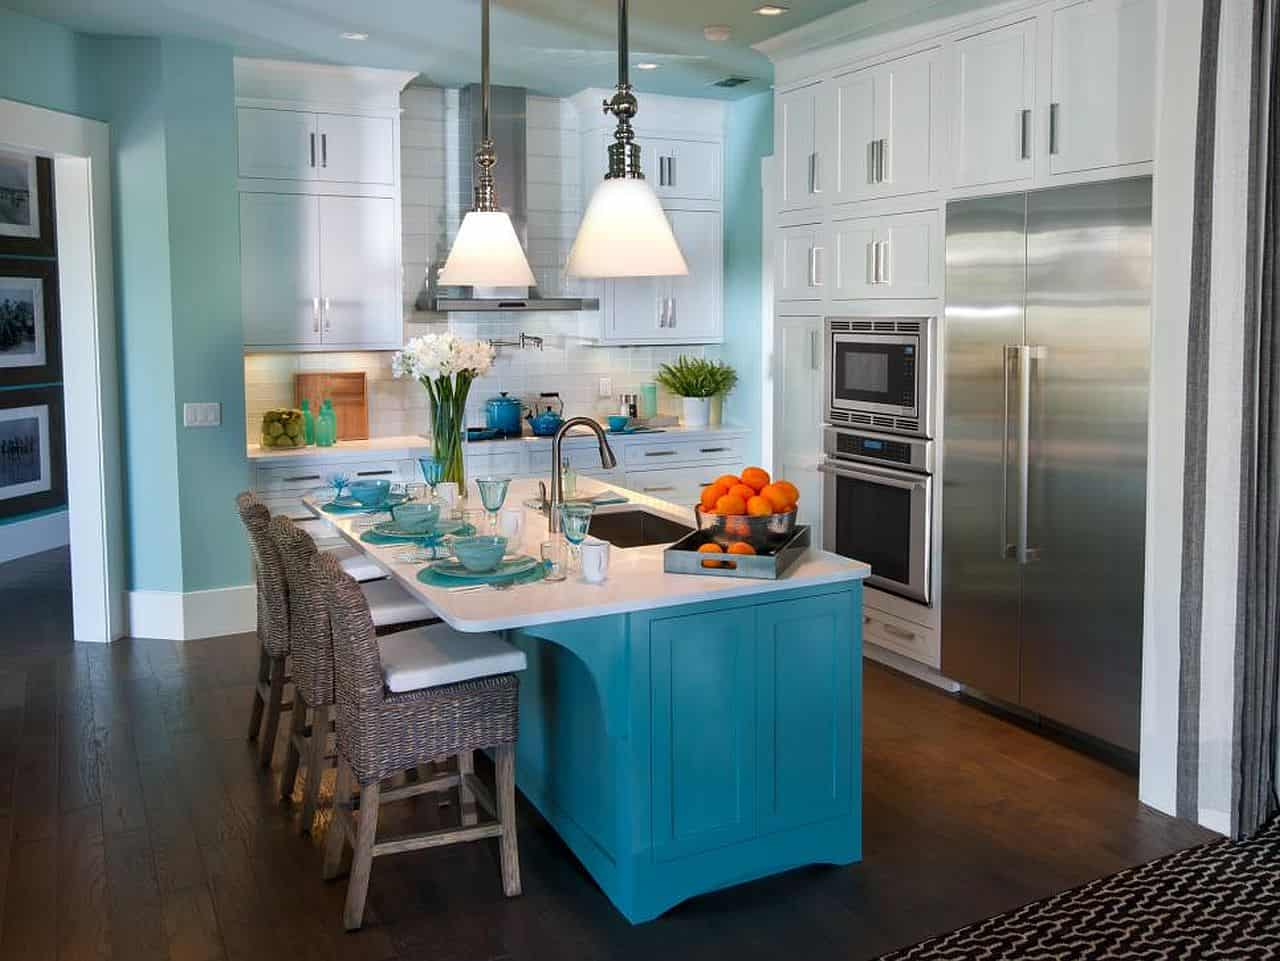 White Teal and Turquoise Kitchen